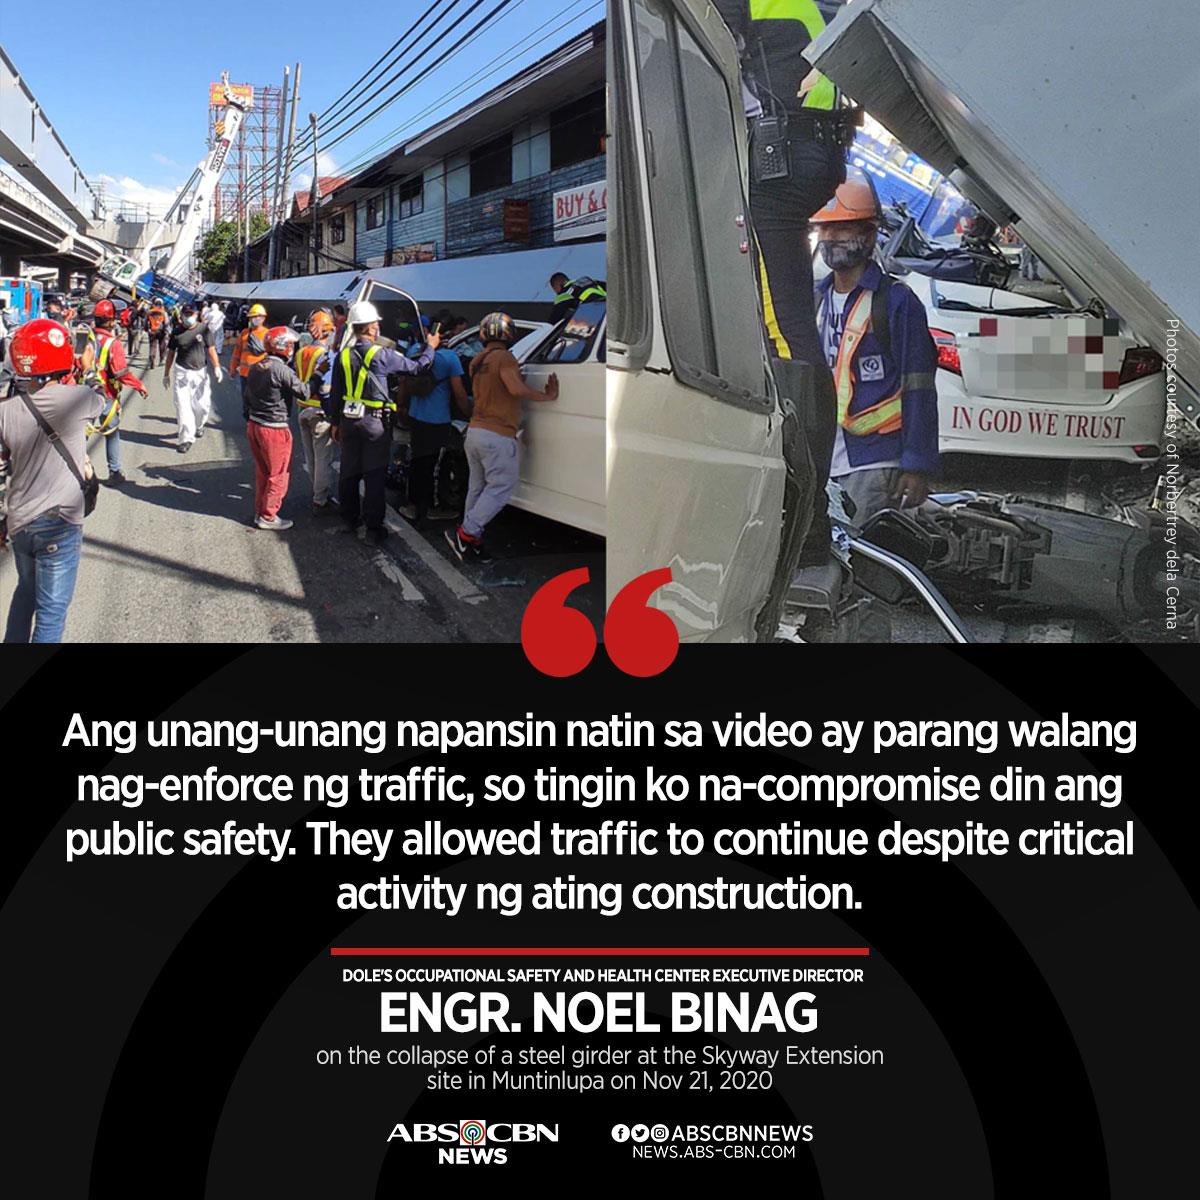 Traffic enforcers and warning signs could not be seen in videos of the accident that were uploaded on social media, said Engr. Noel Binag.   Read: https://t.co/Rg6EPoPdW9 https://t.co/IWehJTMZe0